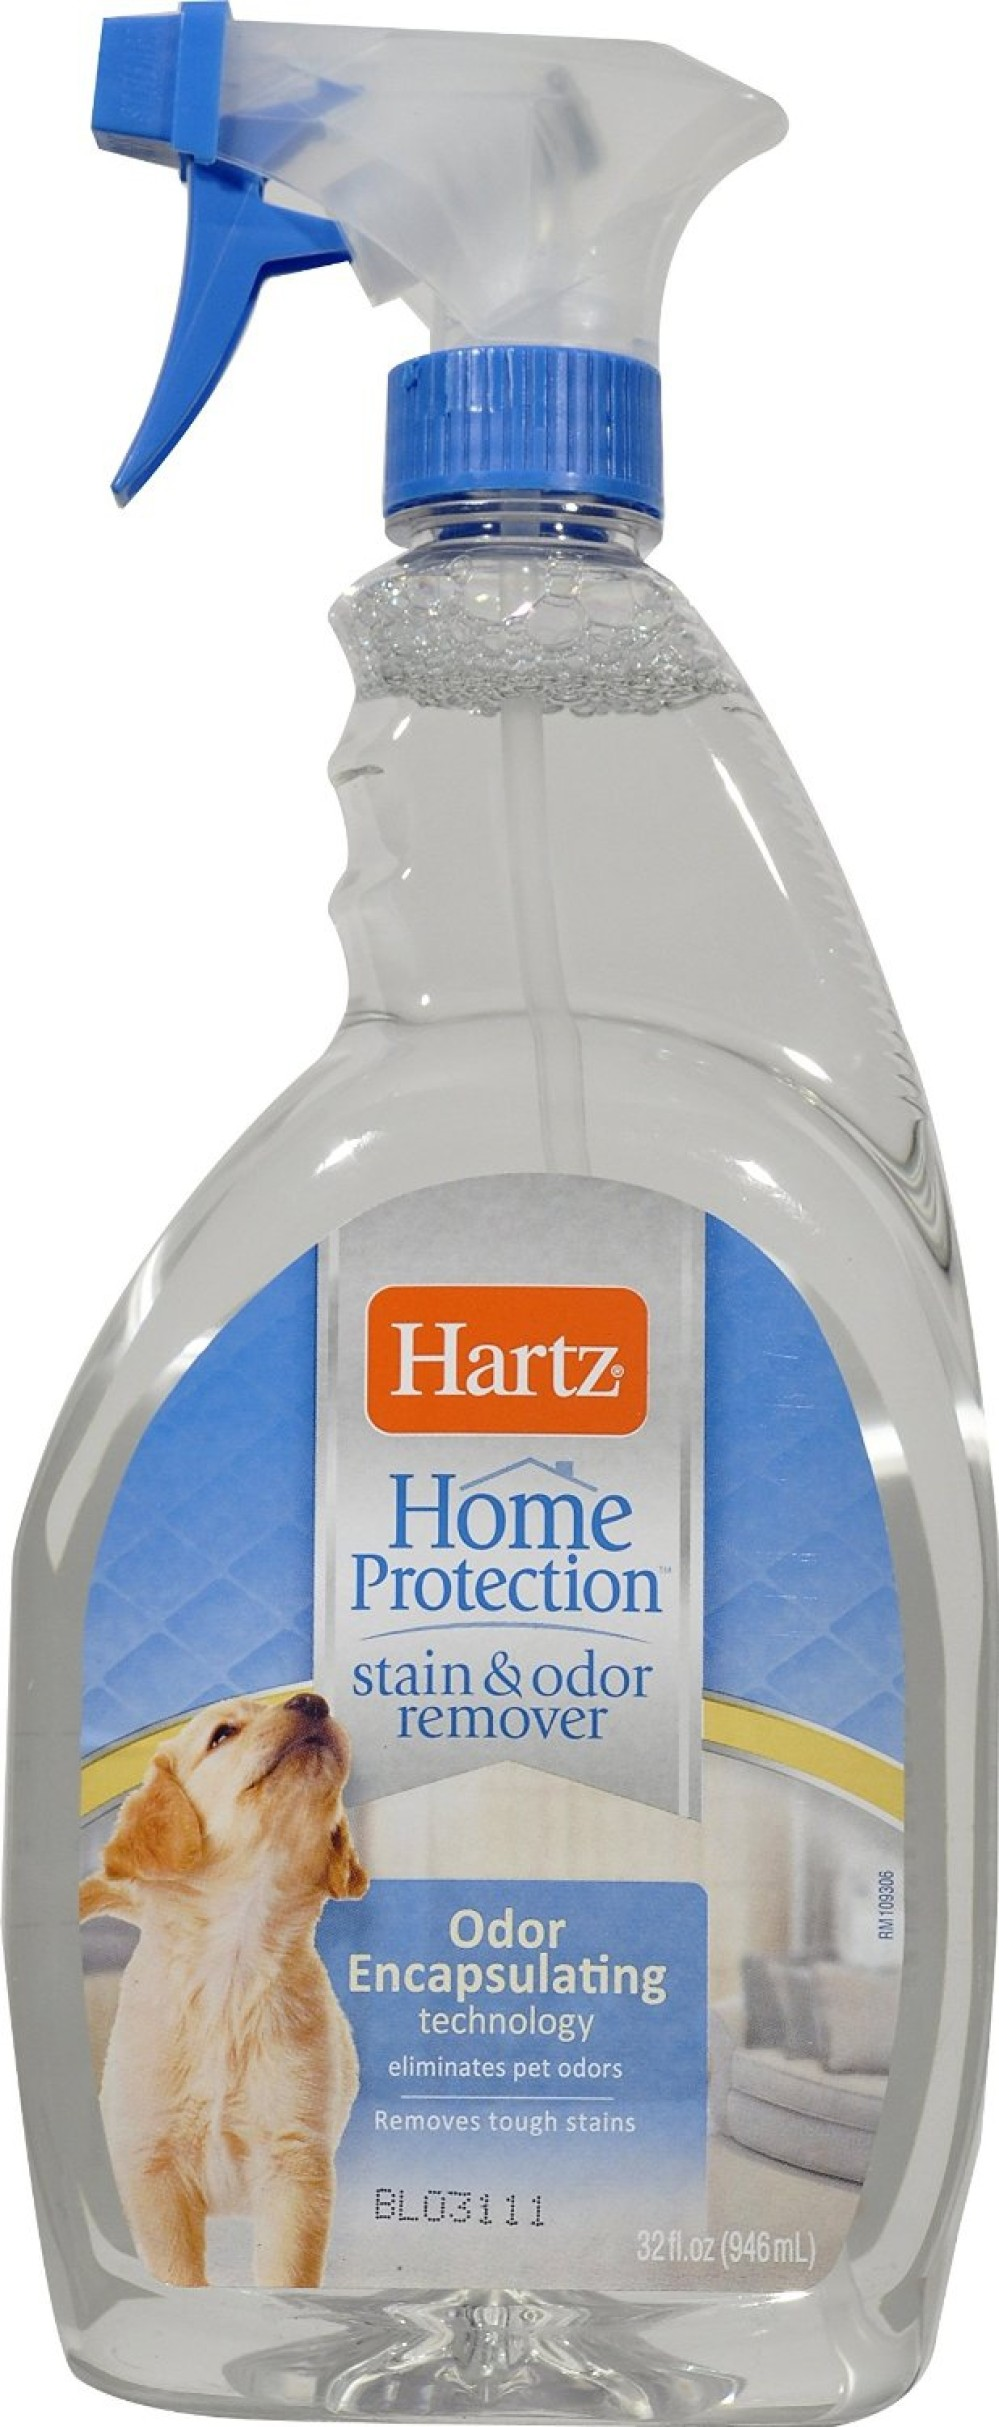 zoo/Hartz_Home_Protection_Stain_amp-_Odor_Remover